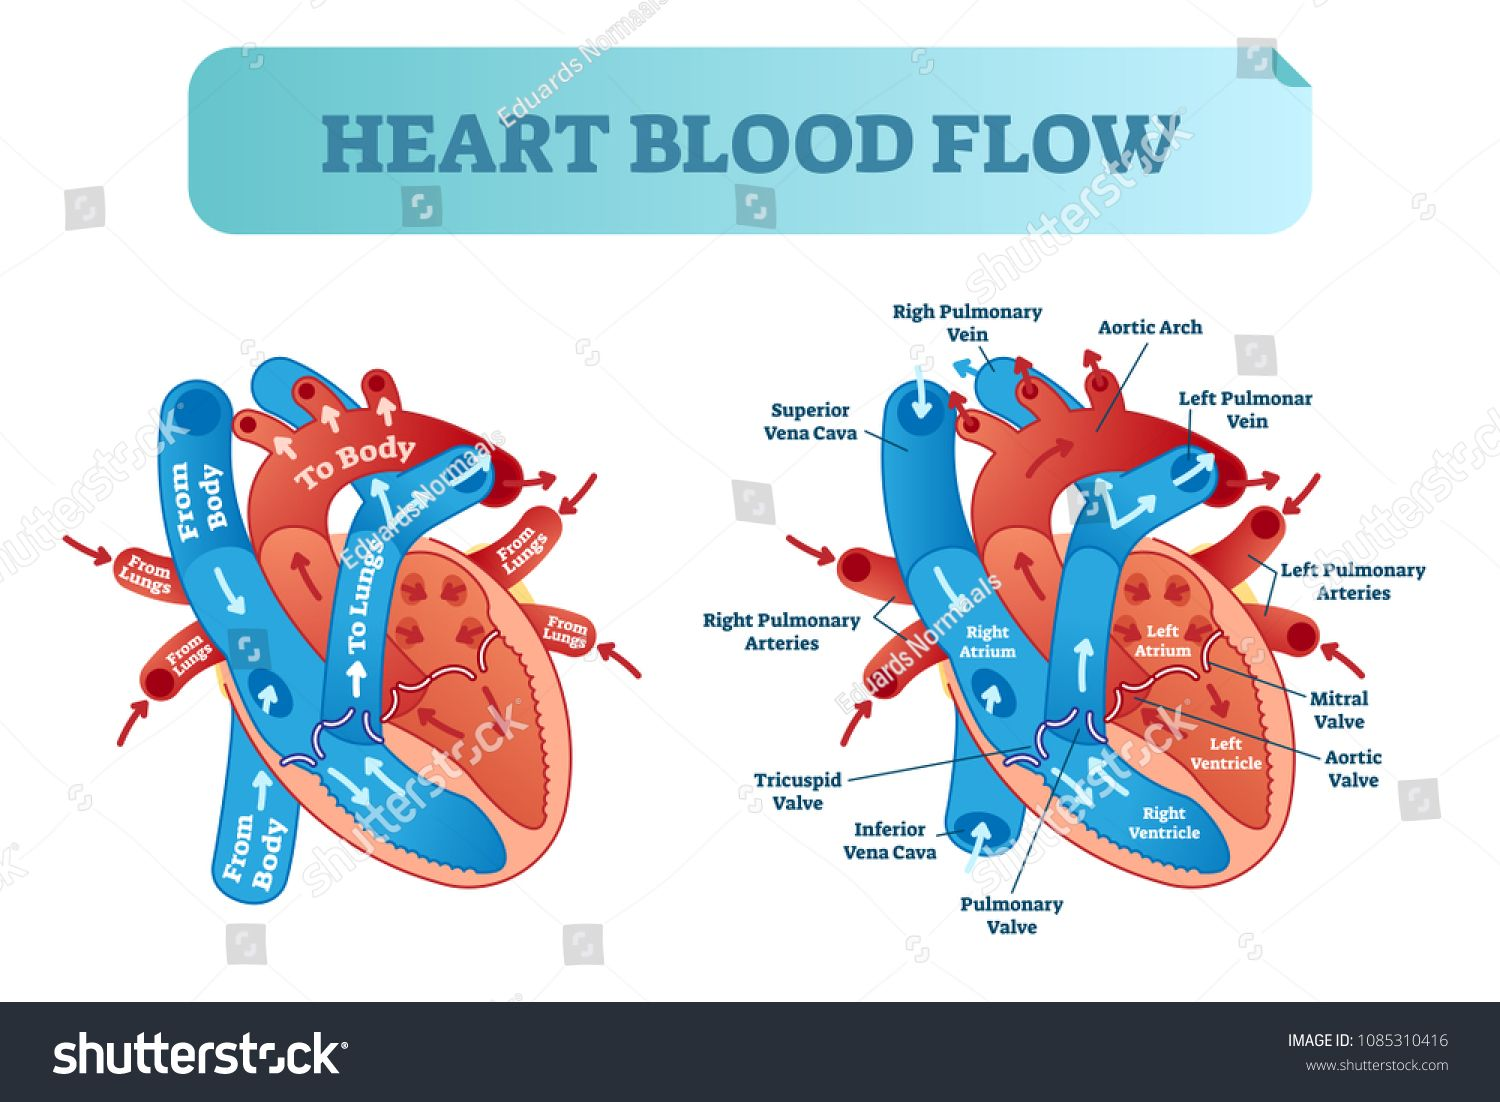 heart blood flow anatomical diagram with atrium and ventricle systemheart blood flow anatomical diagram with atrium and ventricle system vector illustration labeled medical poster